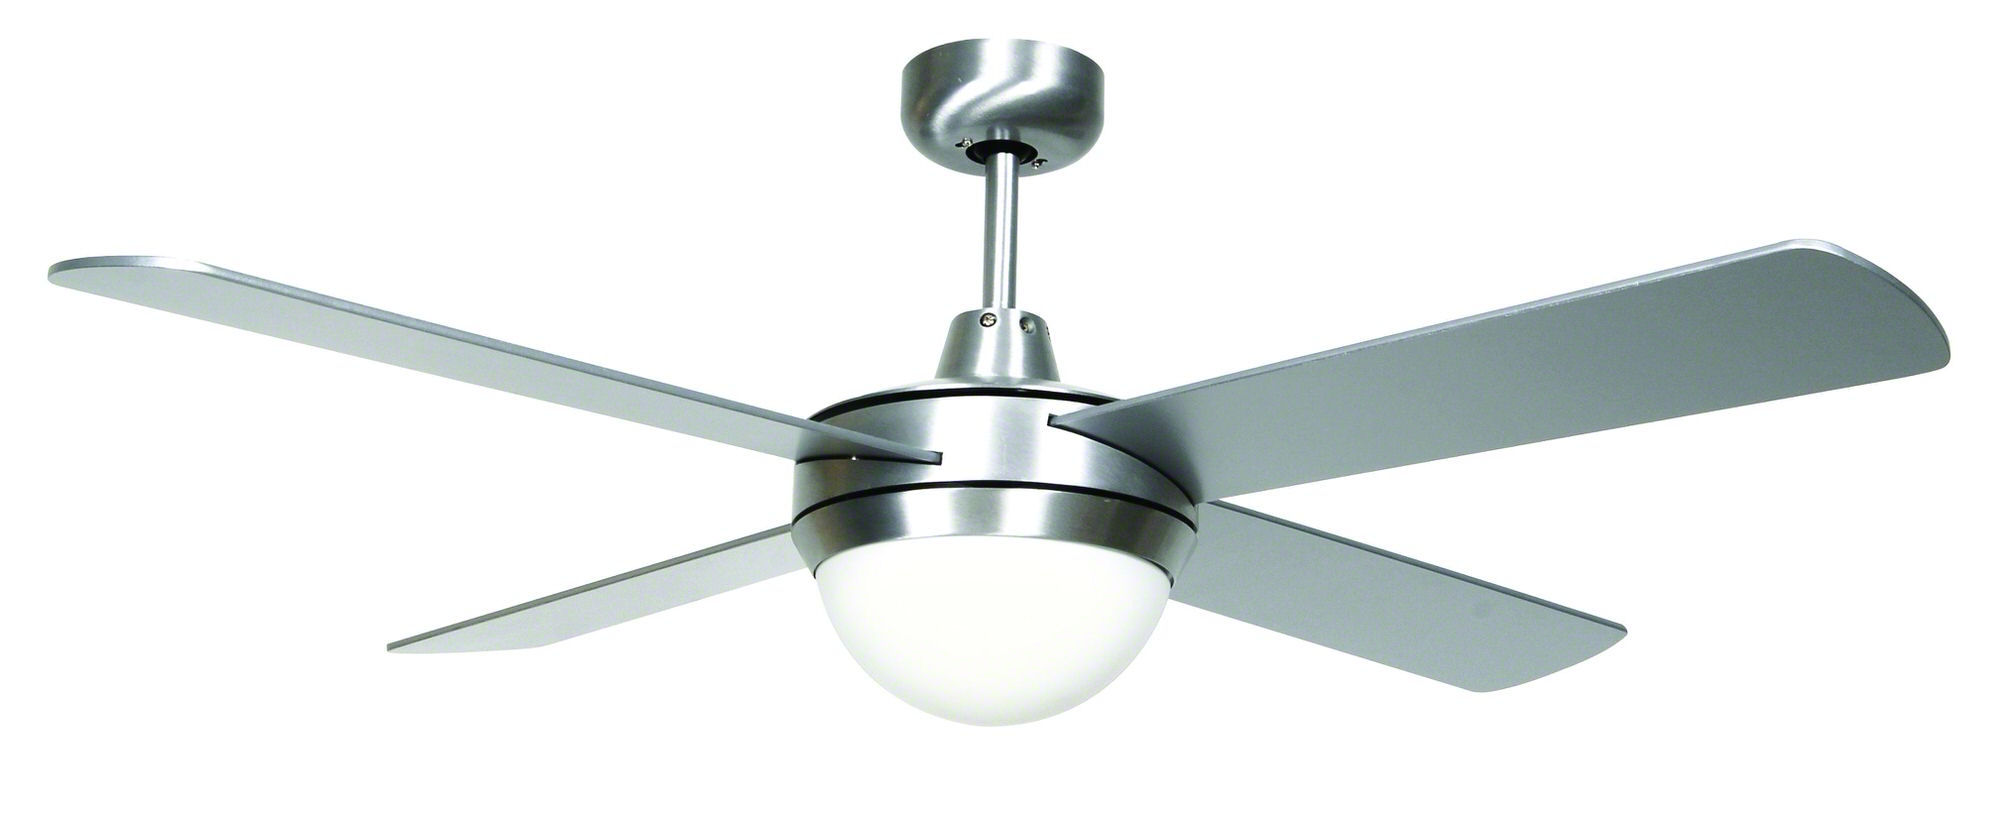 Lucci futura eco ceiling fan new 2016 aloadofball Images